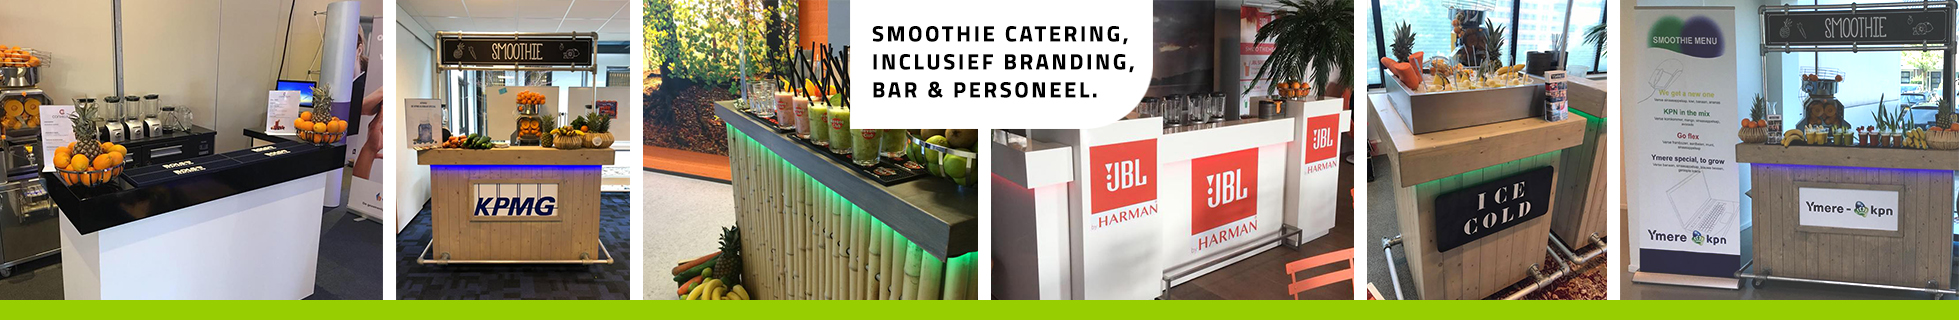 Smoothie catering